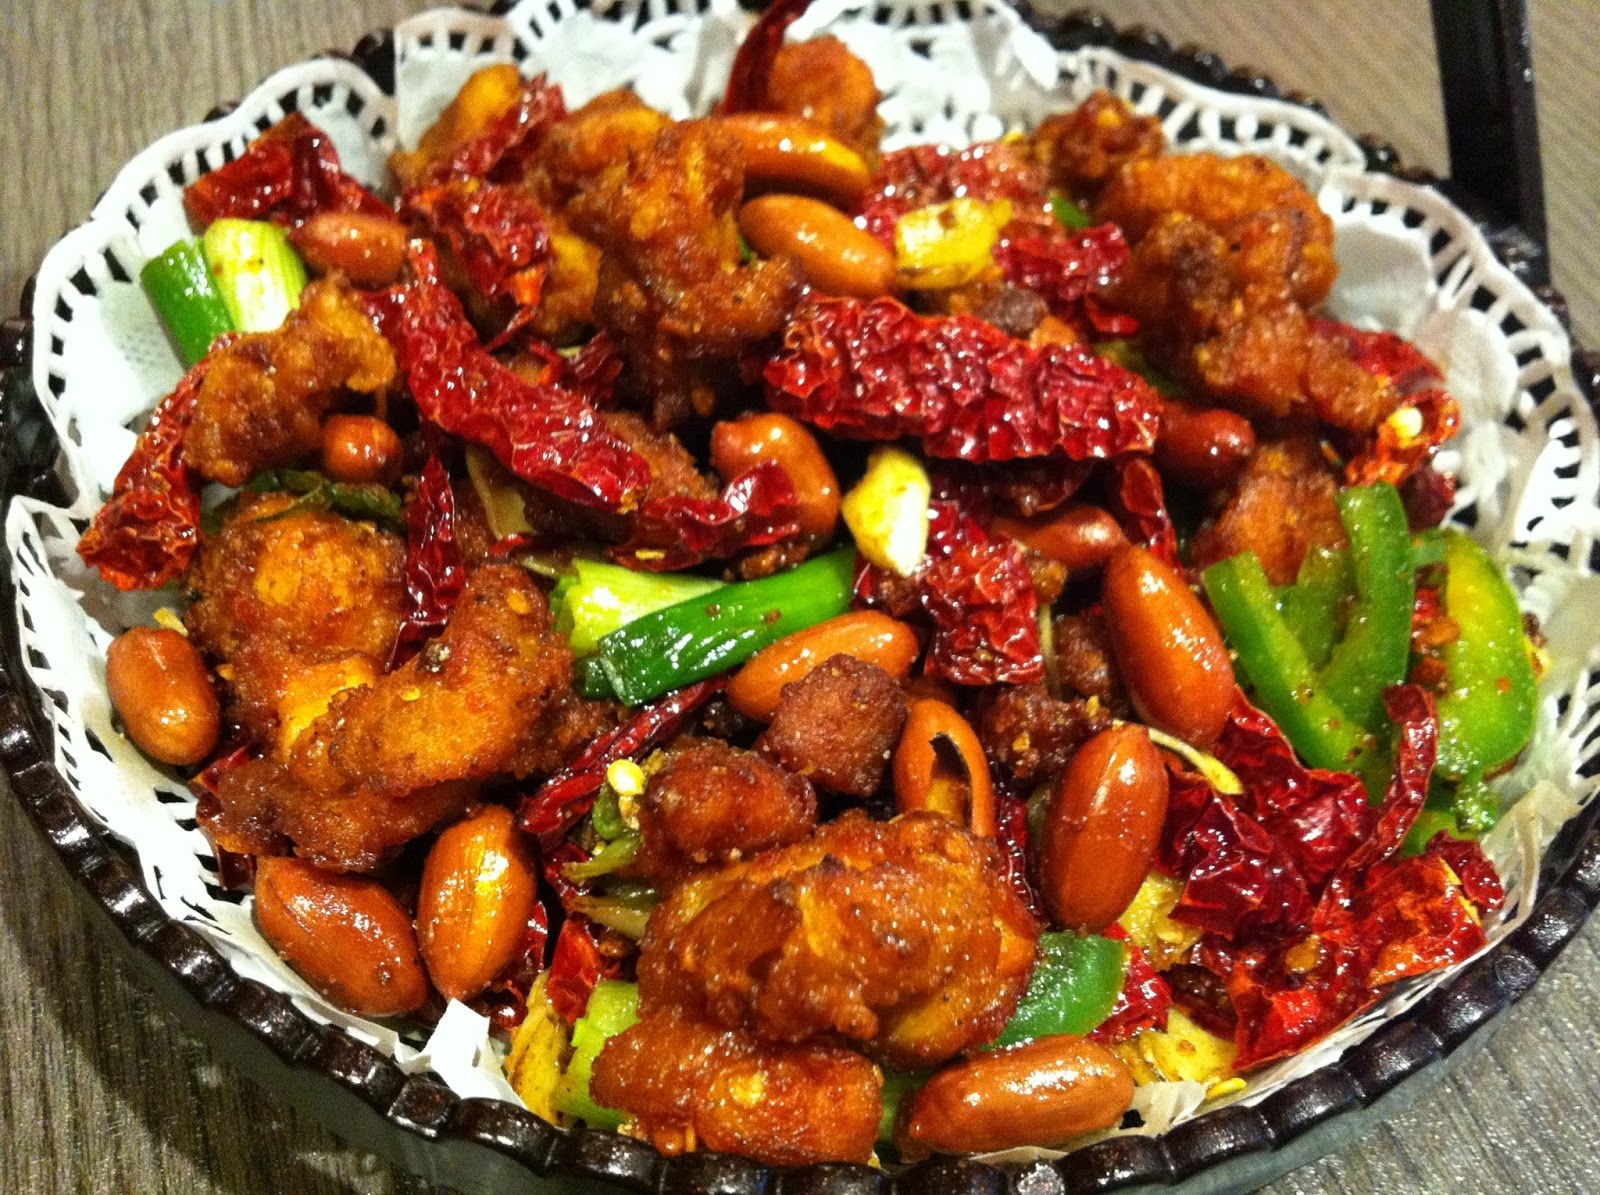 Cubes - the chicken cubes are stir fried with dried chilli, green ...